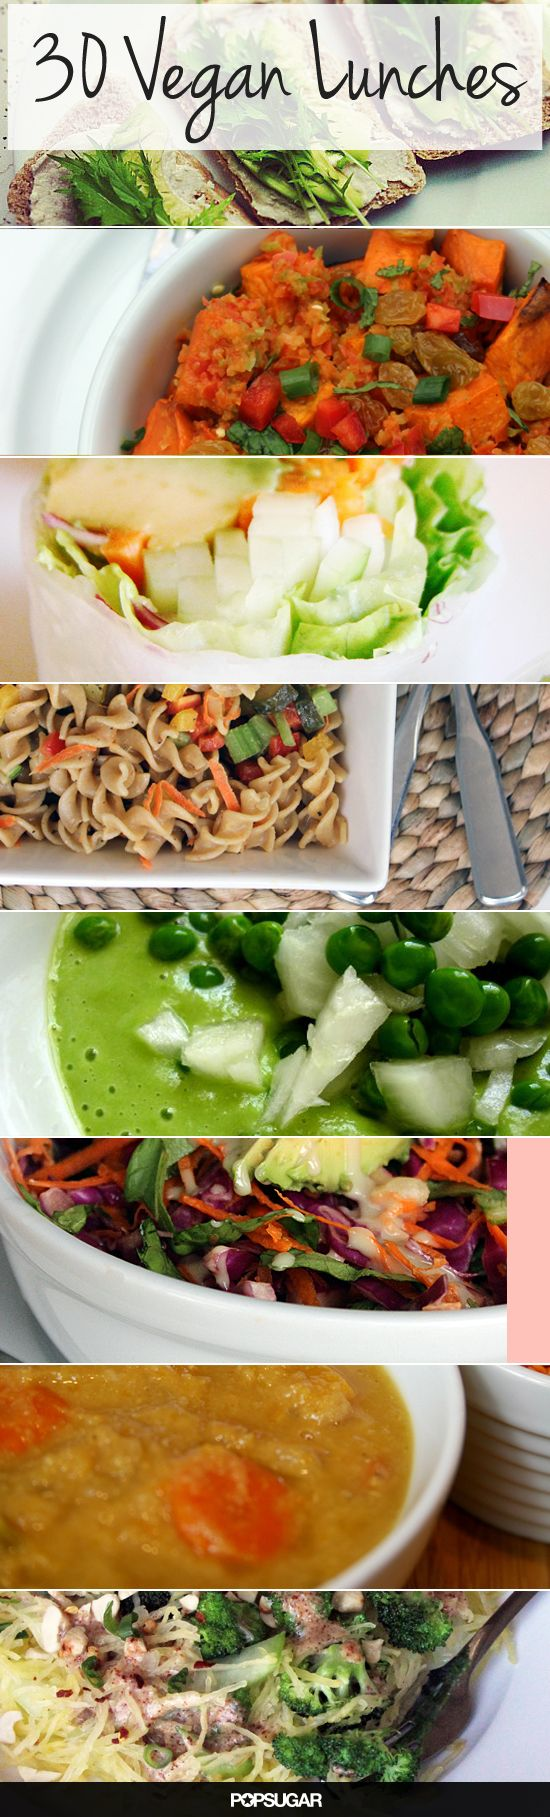 30 Vegan Lunch Ideas.